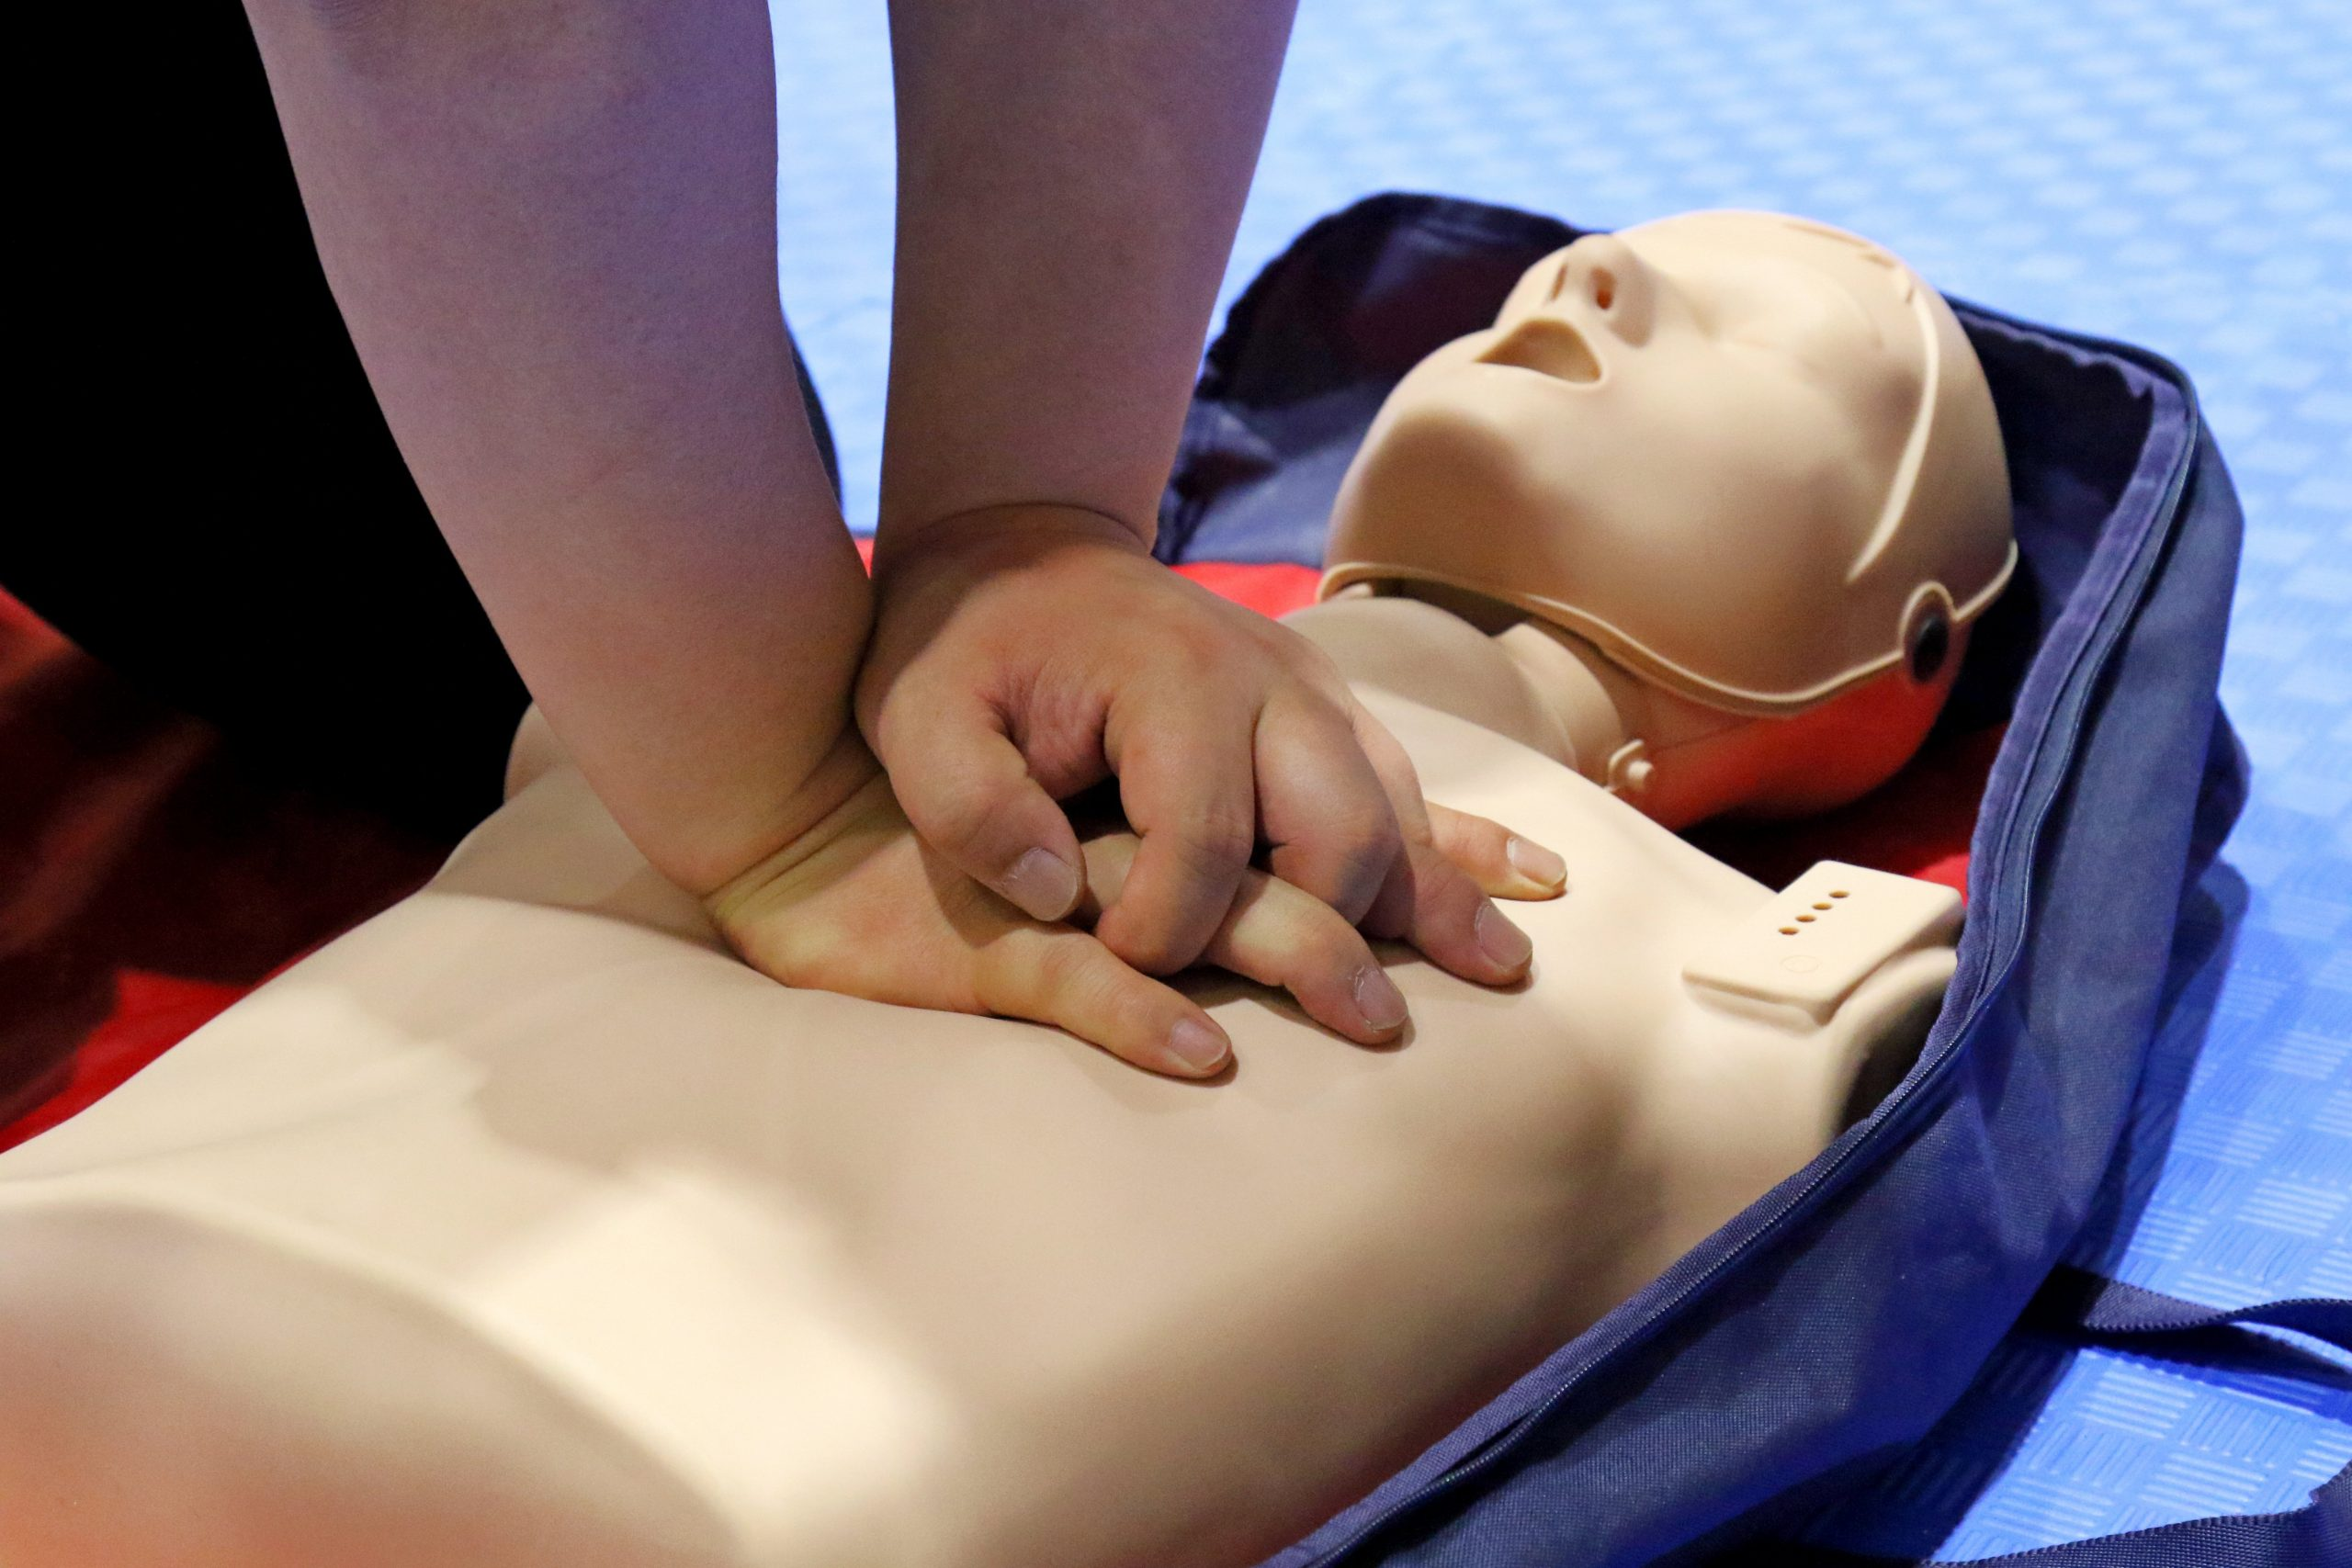 CACH First Aid training offers regulated and accredited first aid, food hygiene, mental health and safeguarding training to individuals, parents, grandparents, businesses, schools, and colleges. contact us